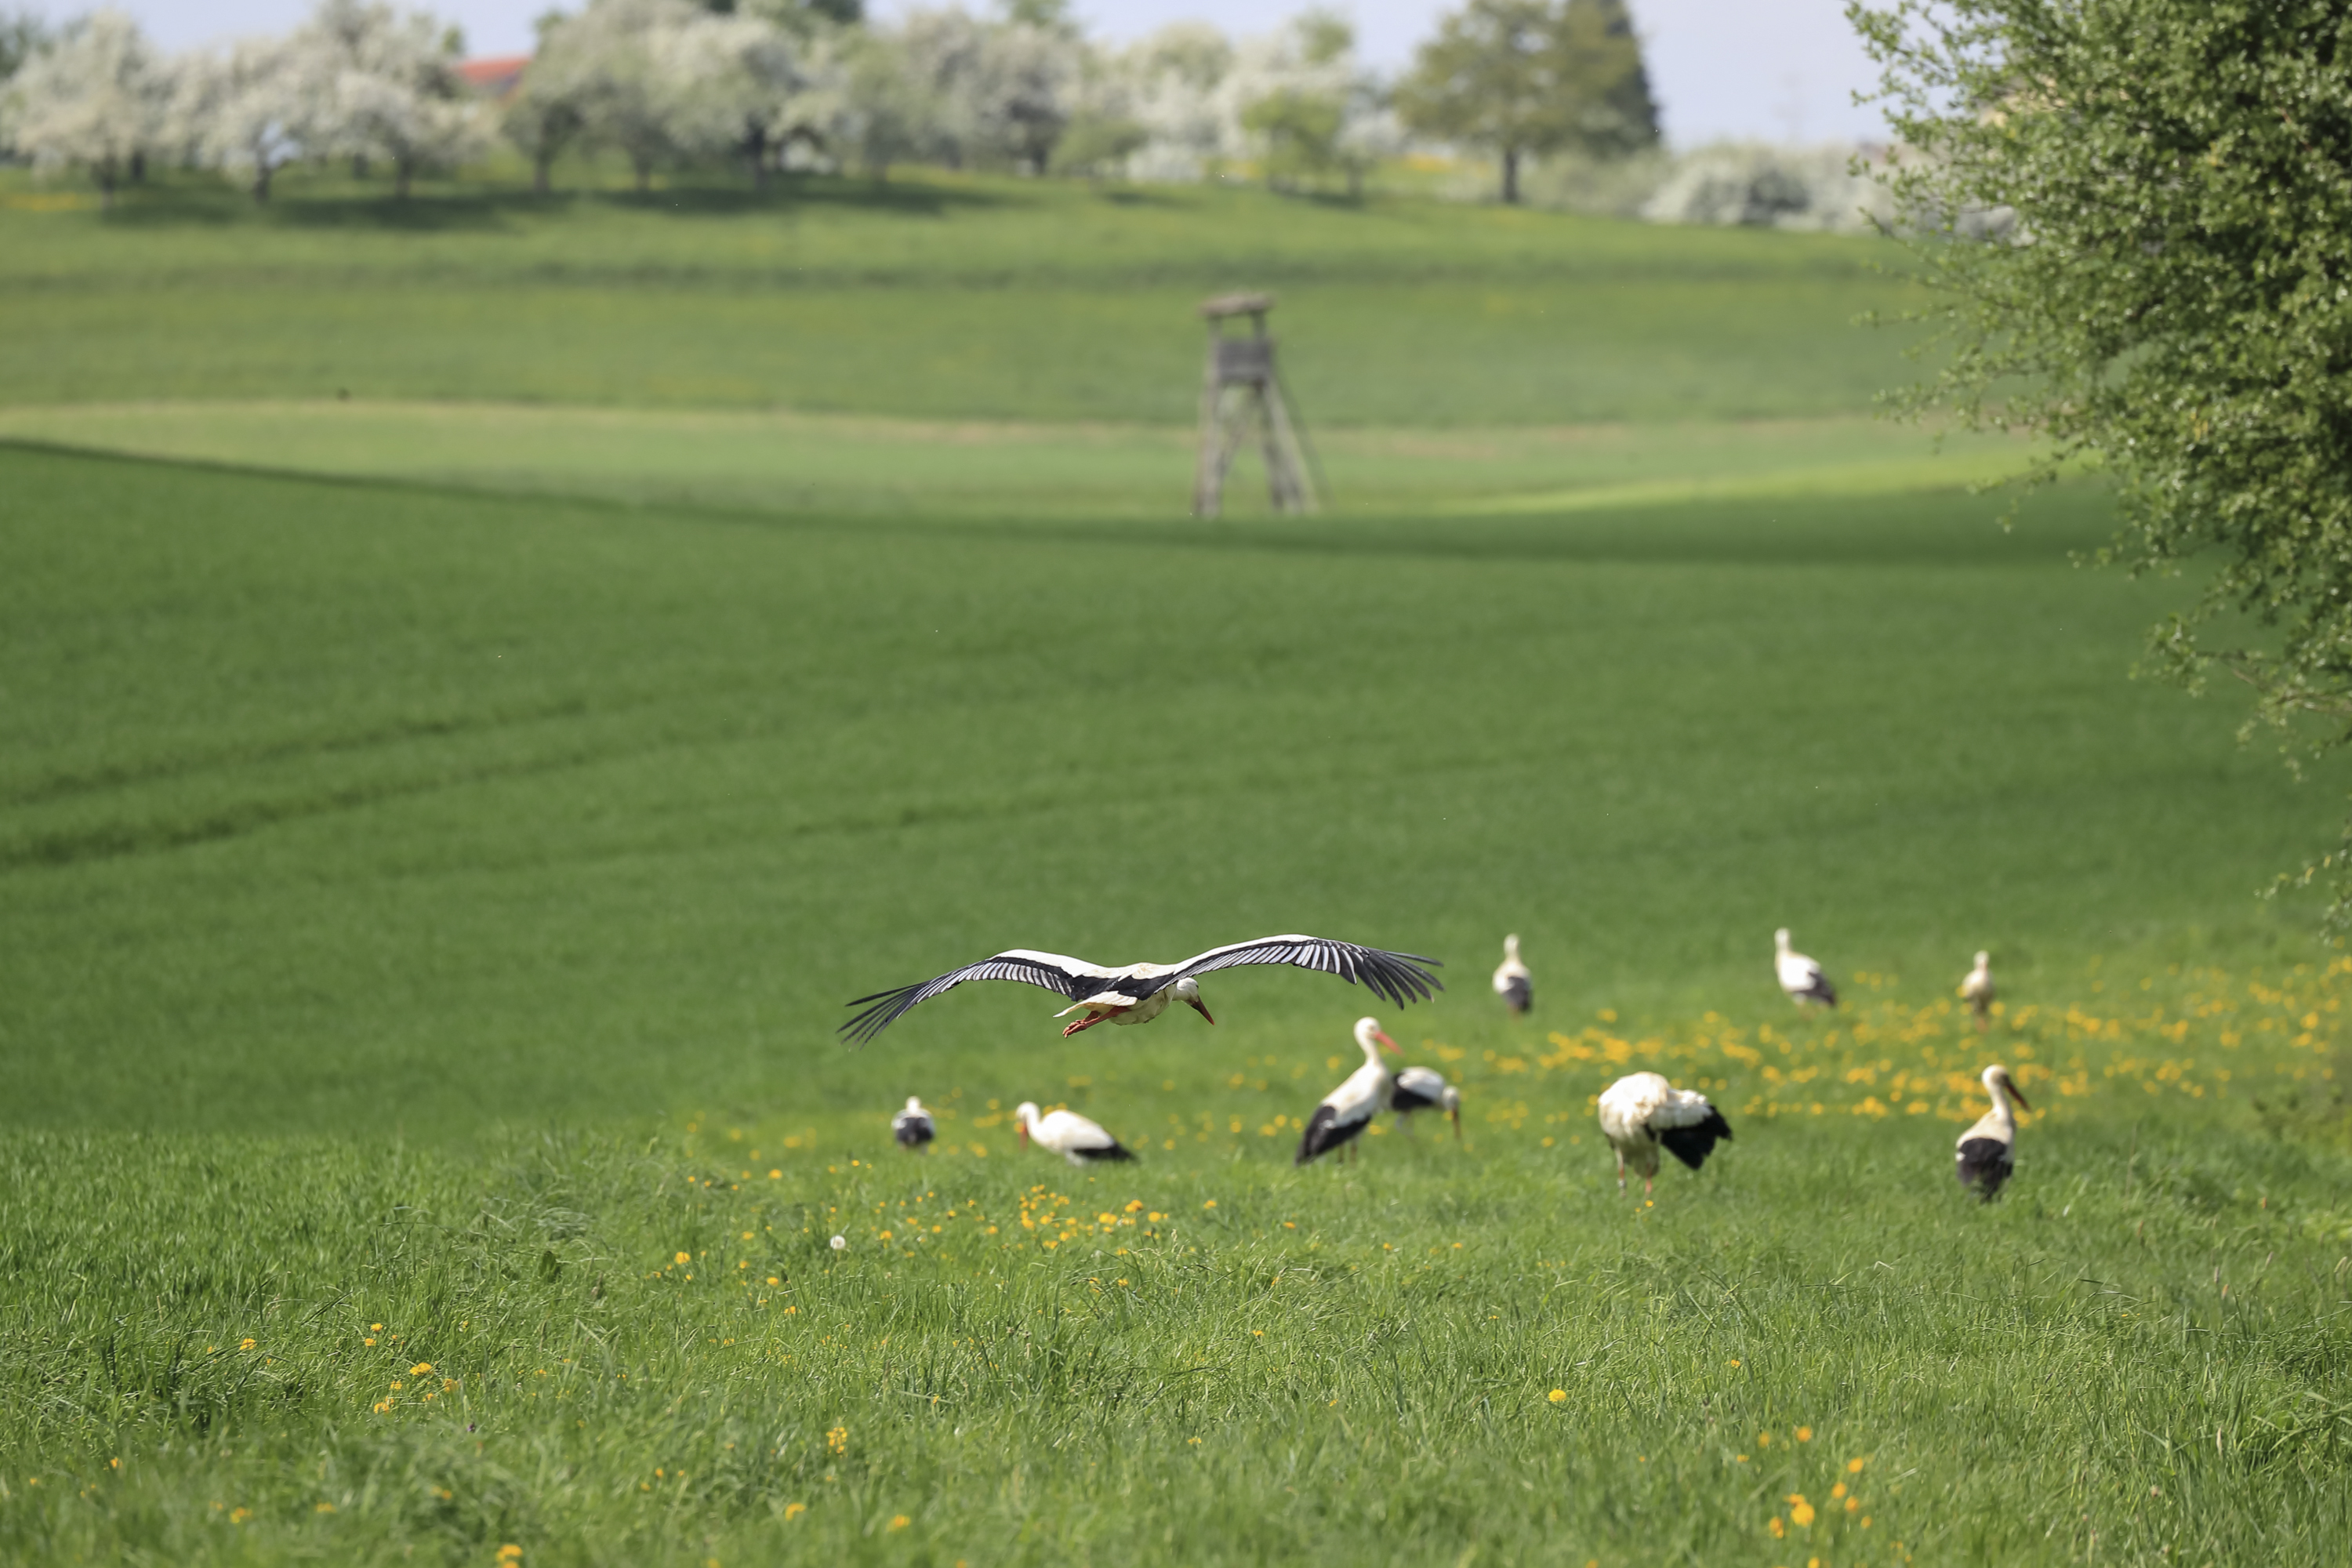 Stork flying towards a group of white storks in the field.  Photo: Christian Ziegler. Copyright: MaxCine, Max Planck Institute for Ornithology in Radolfzell